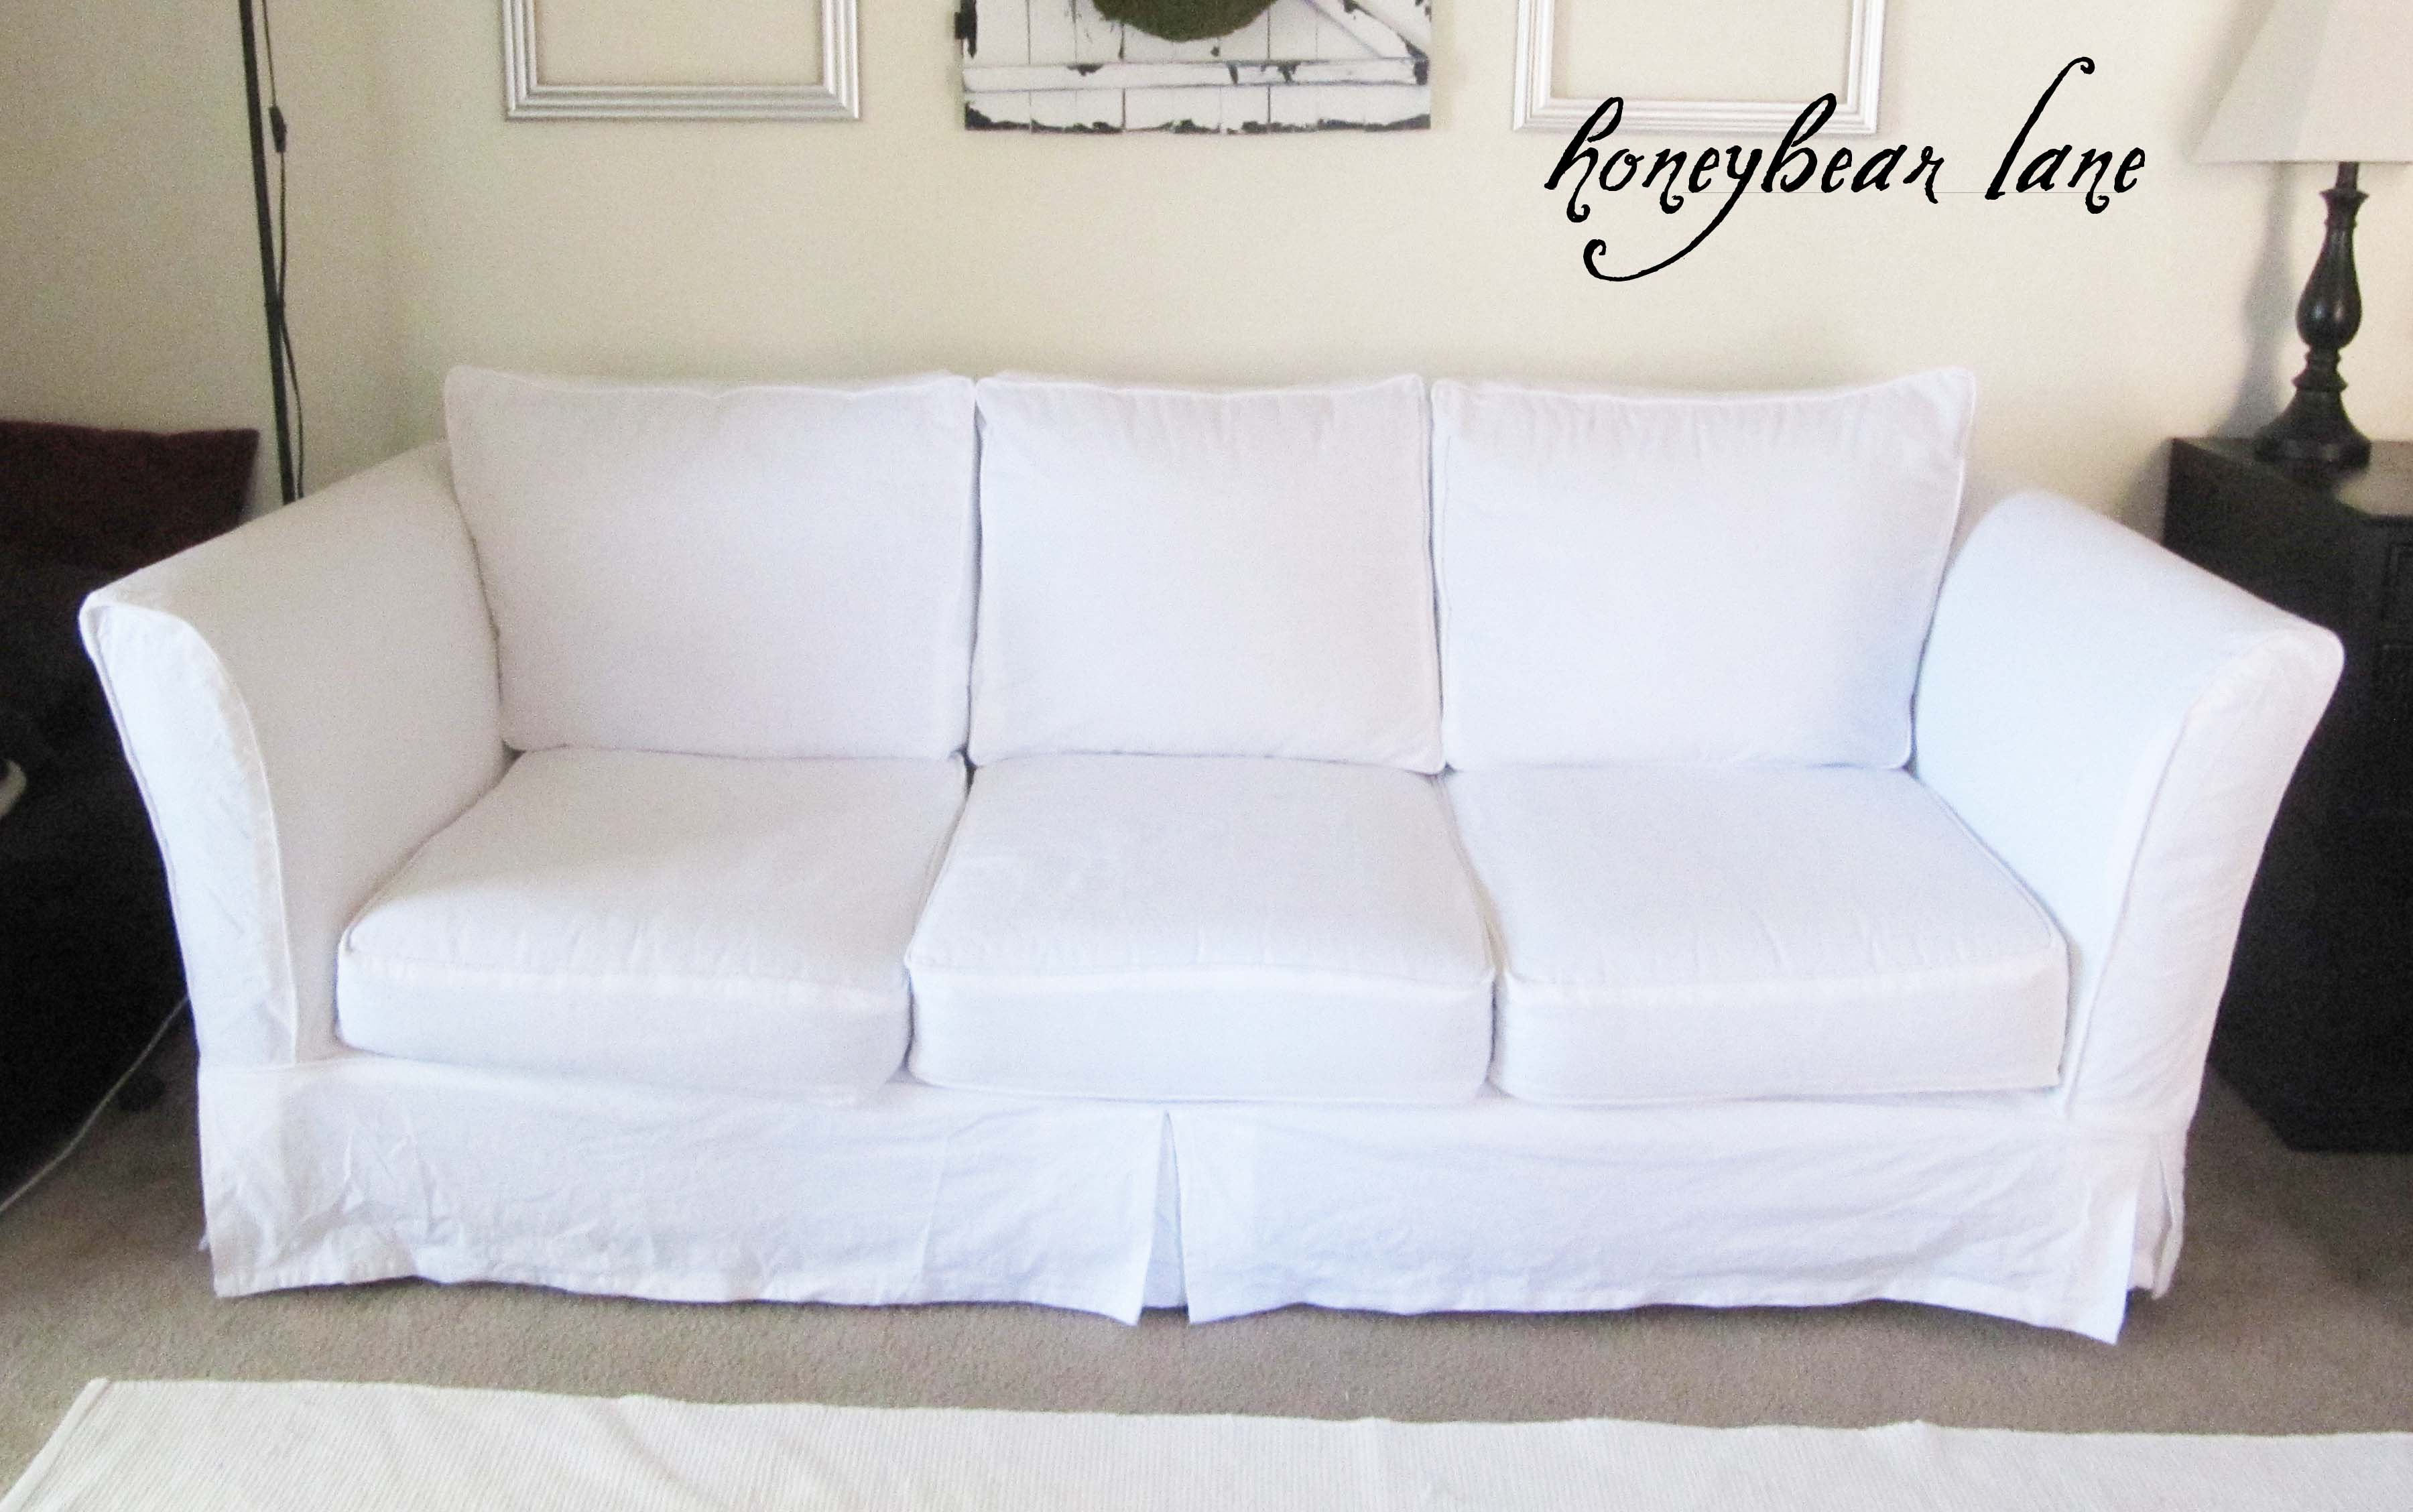 How to Make a Slipcover Part 2: Slipcover Reveal! - HoneyBear Lane